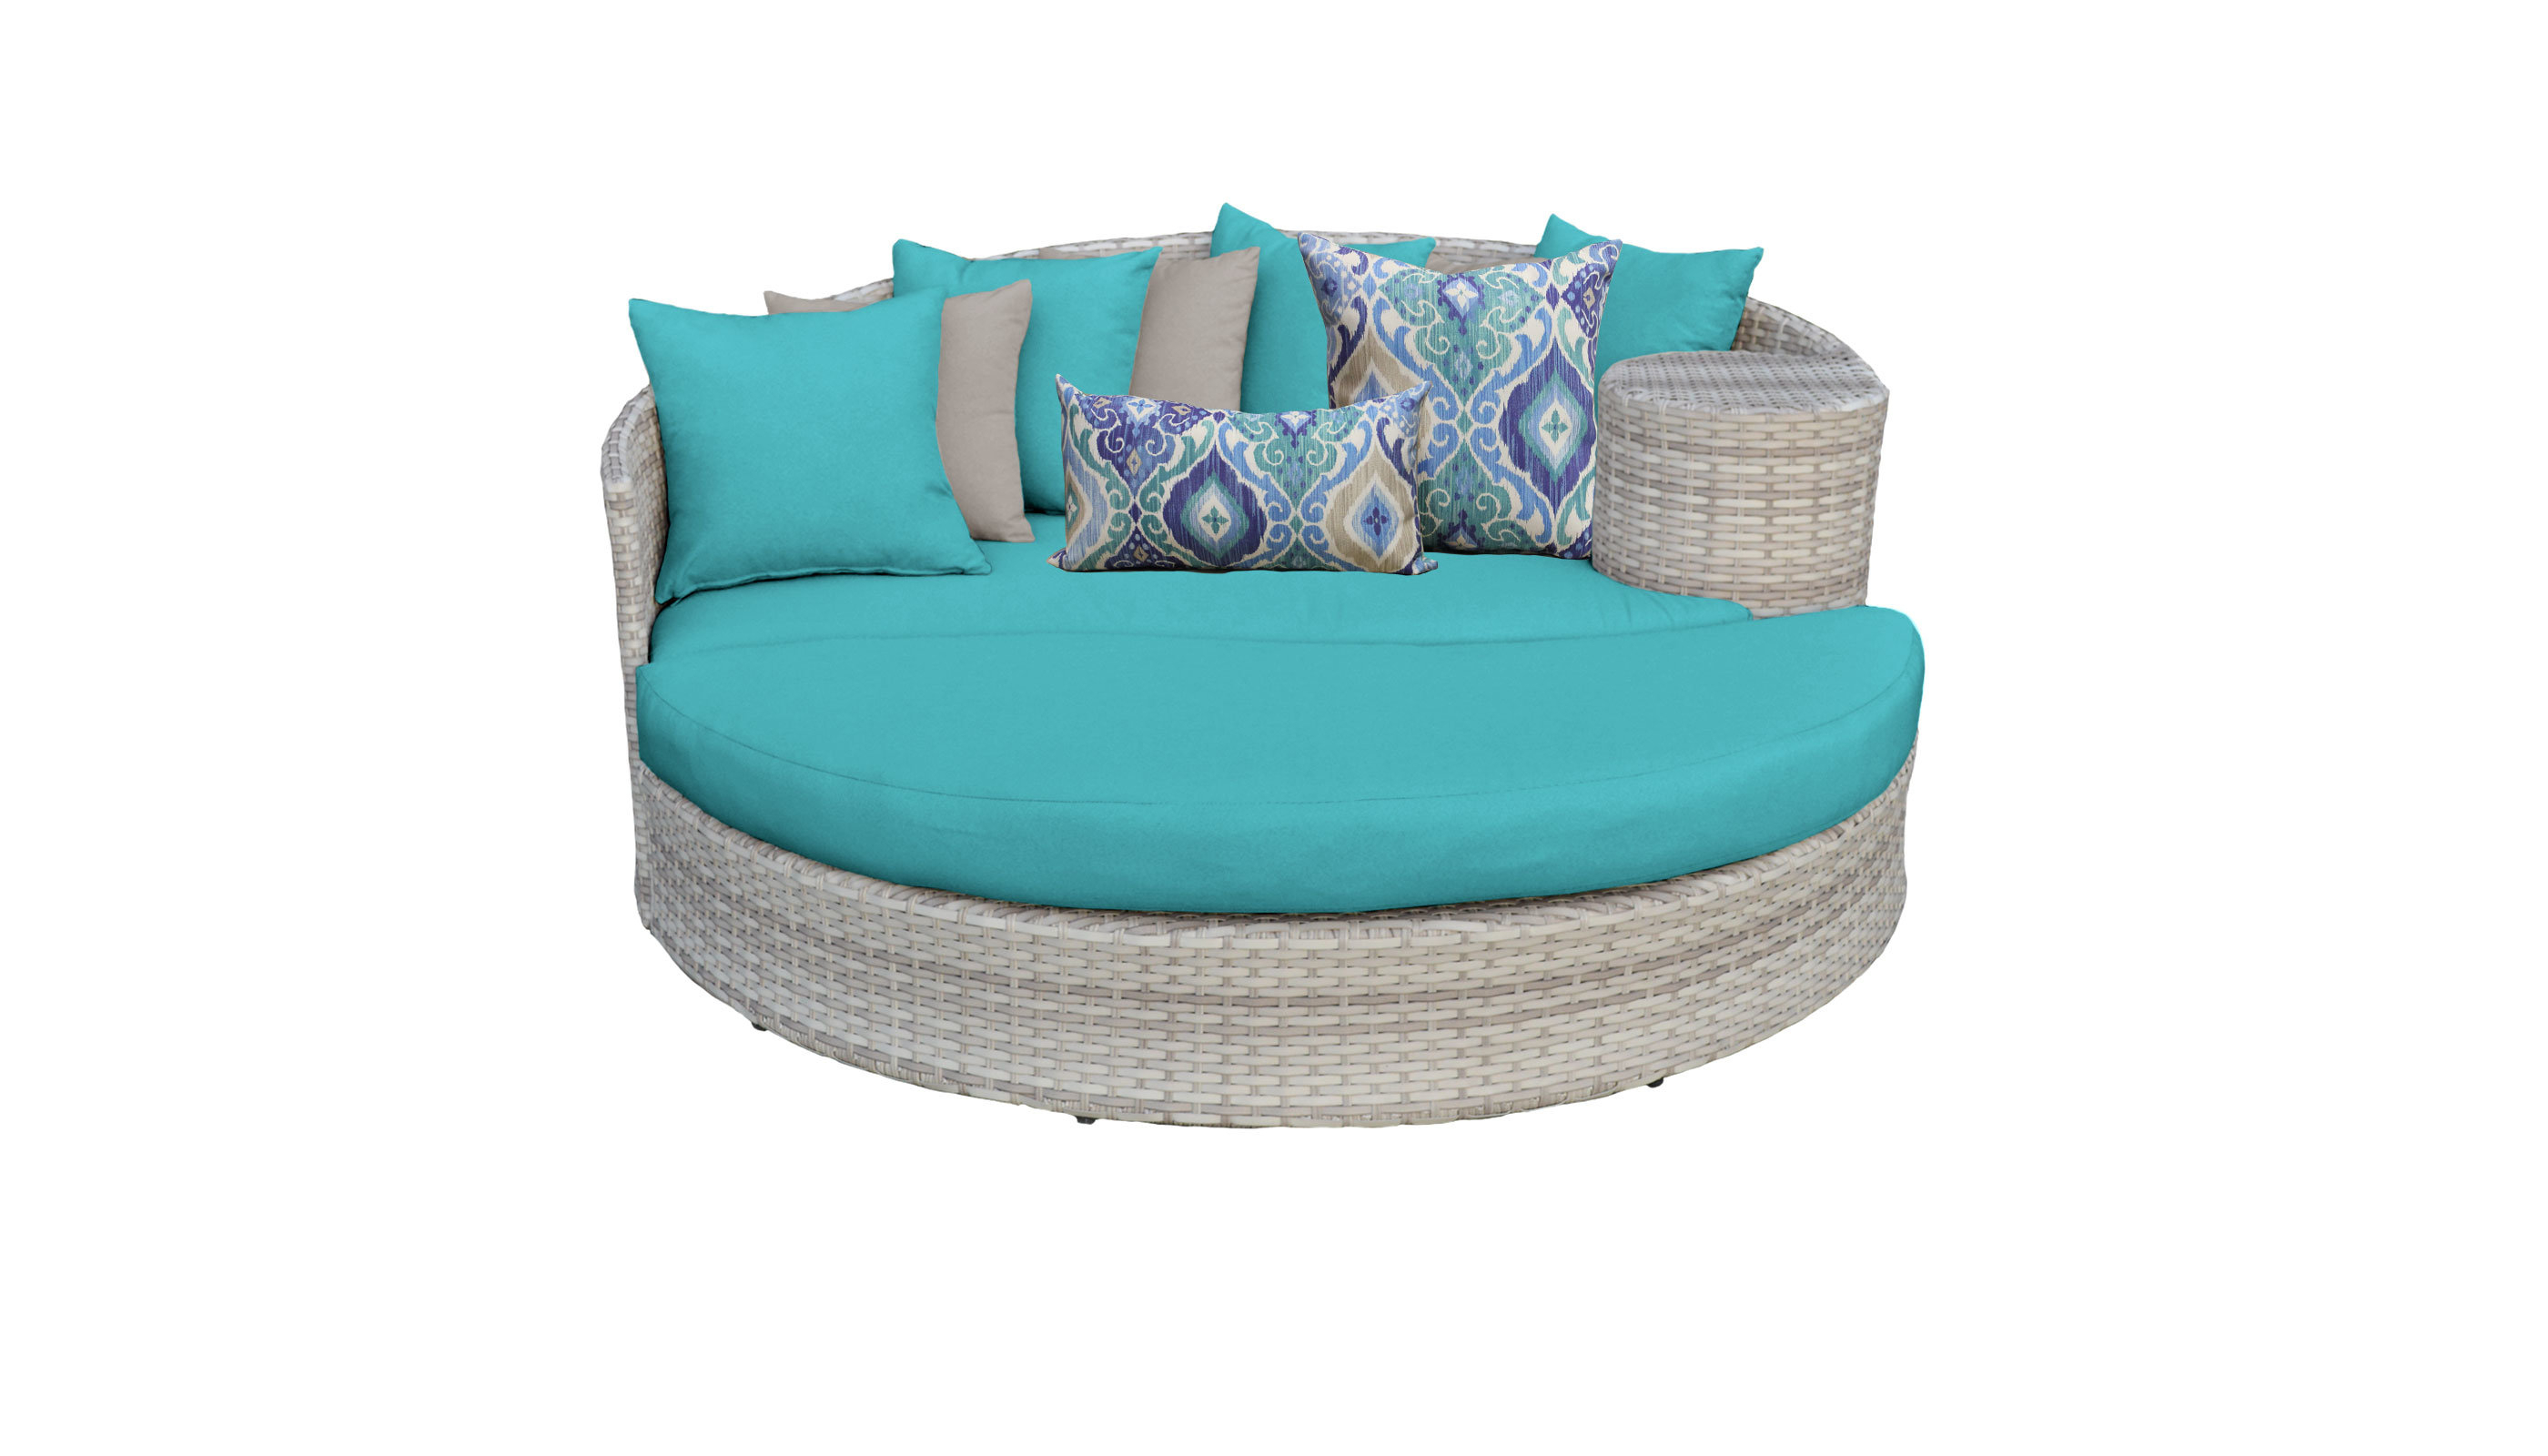 Falmouth Patio Sofas With Cushions With Regard To Favorite Falmouth Patio Daybed With Cushions (View 10 of 20)